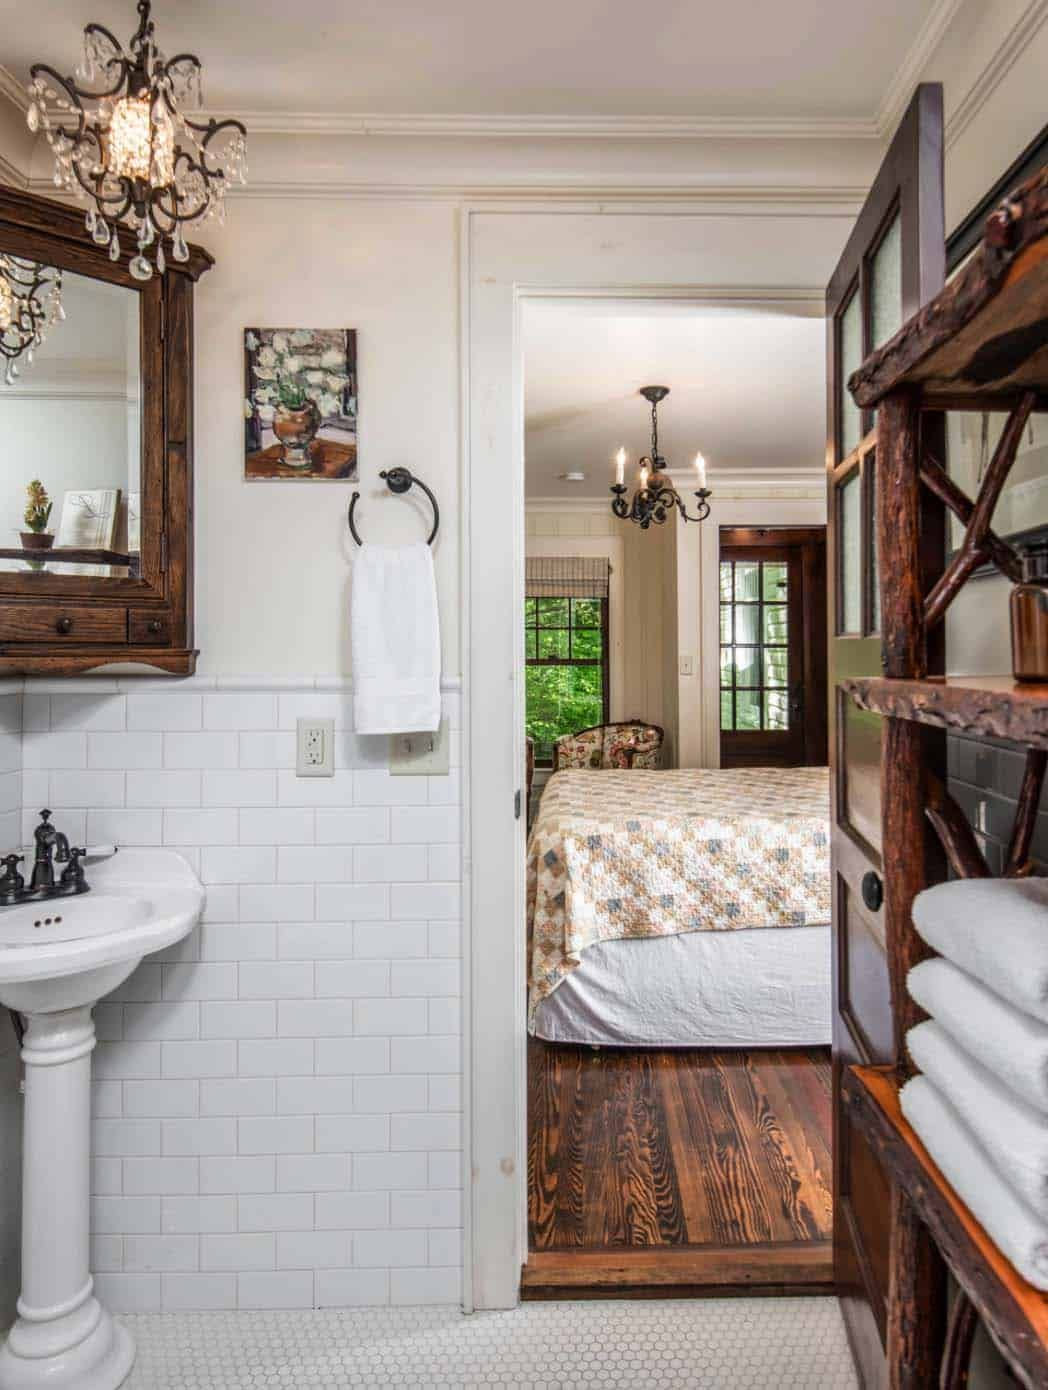 Victorian Farmhouse In Georgia Gets Transformed With Charming Details Farmhouse Renovation Victorian Farmhouse Country Farmhouse Decor